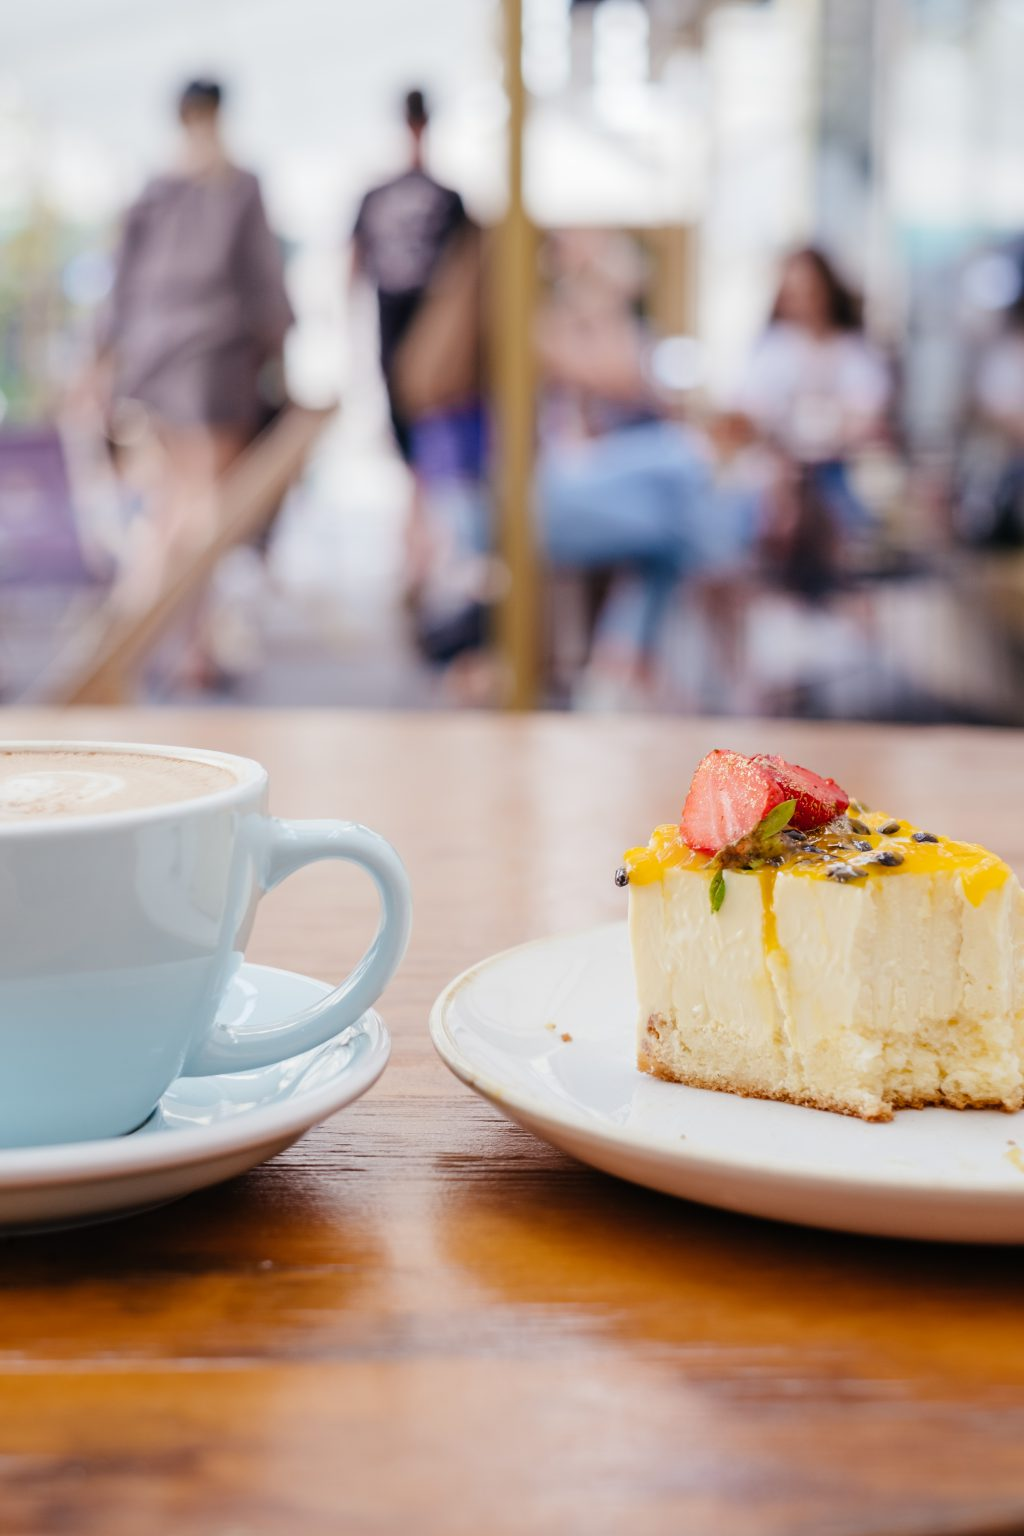 Latte and a cheesecake on a café table 4 - free stock photo